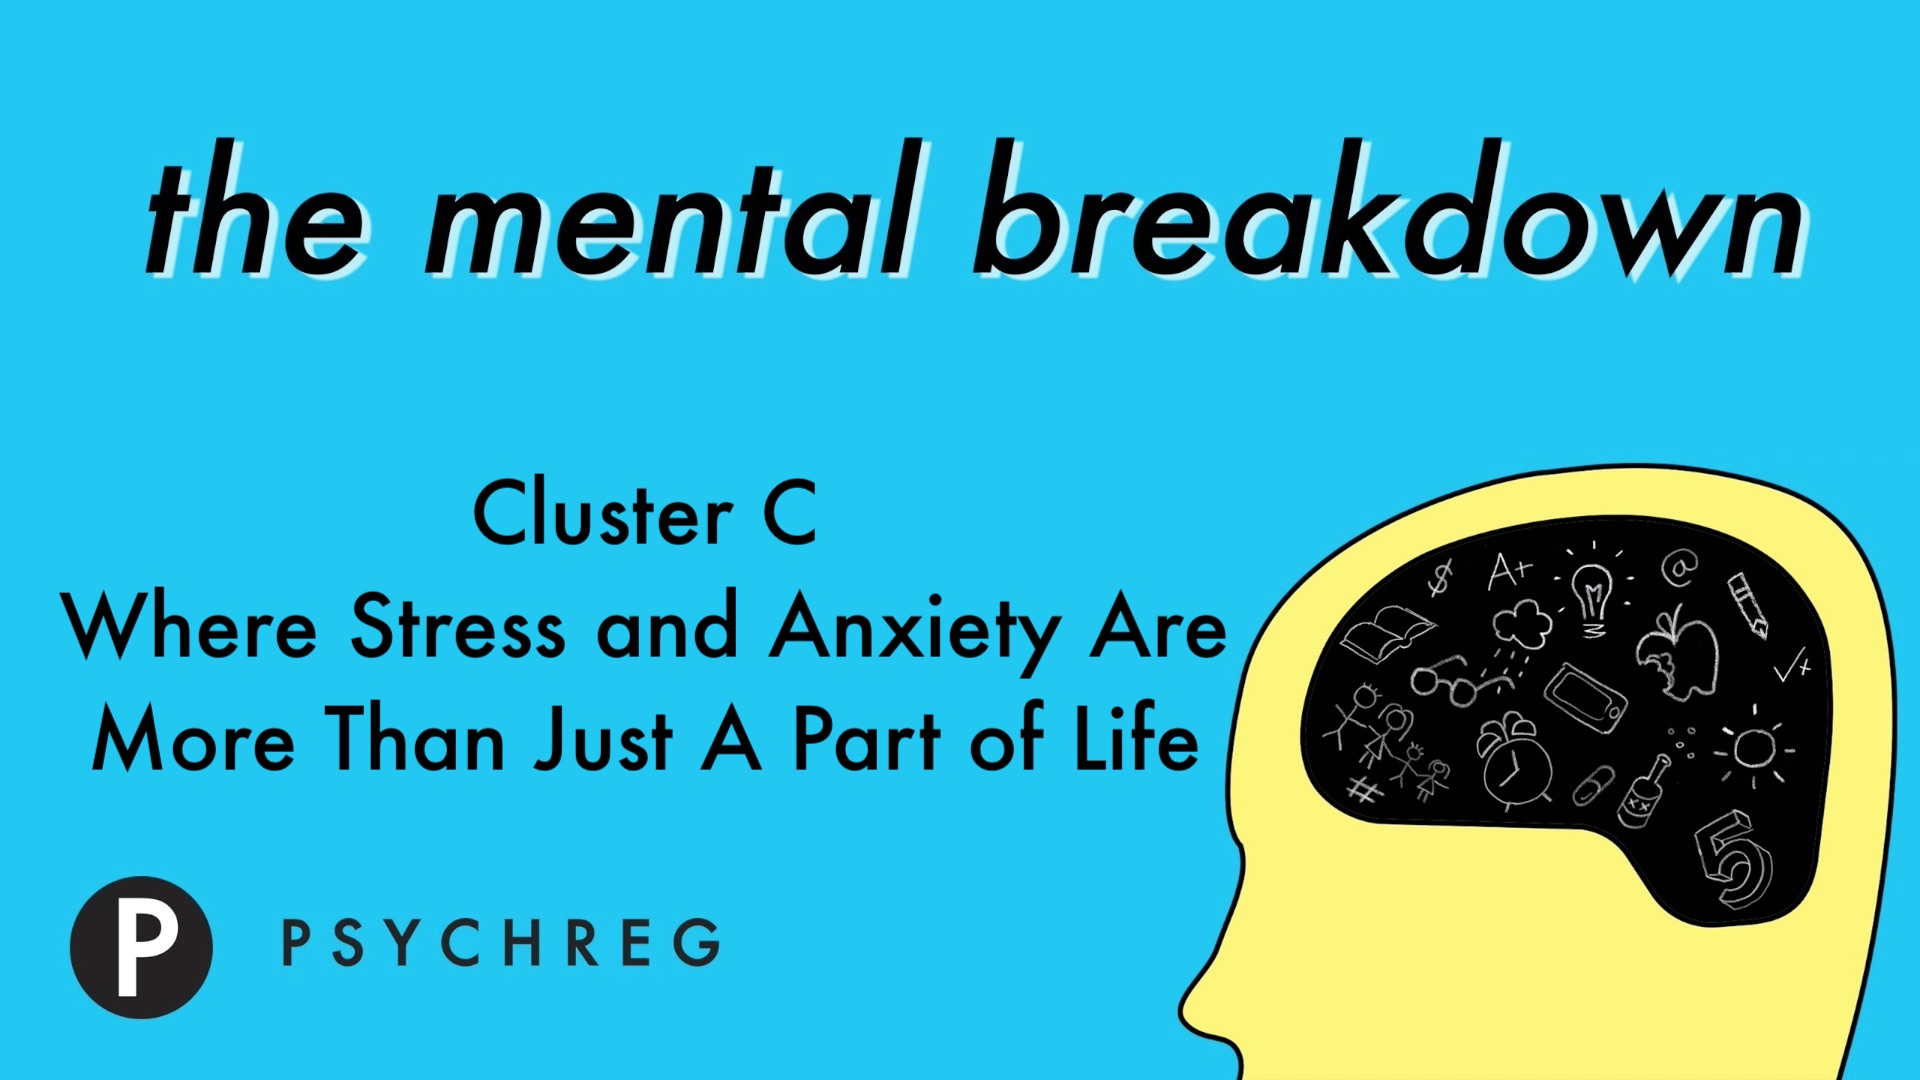 Cluster C, Where Stress and Anxiety Are More Than Just a